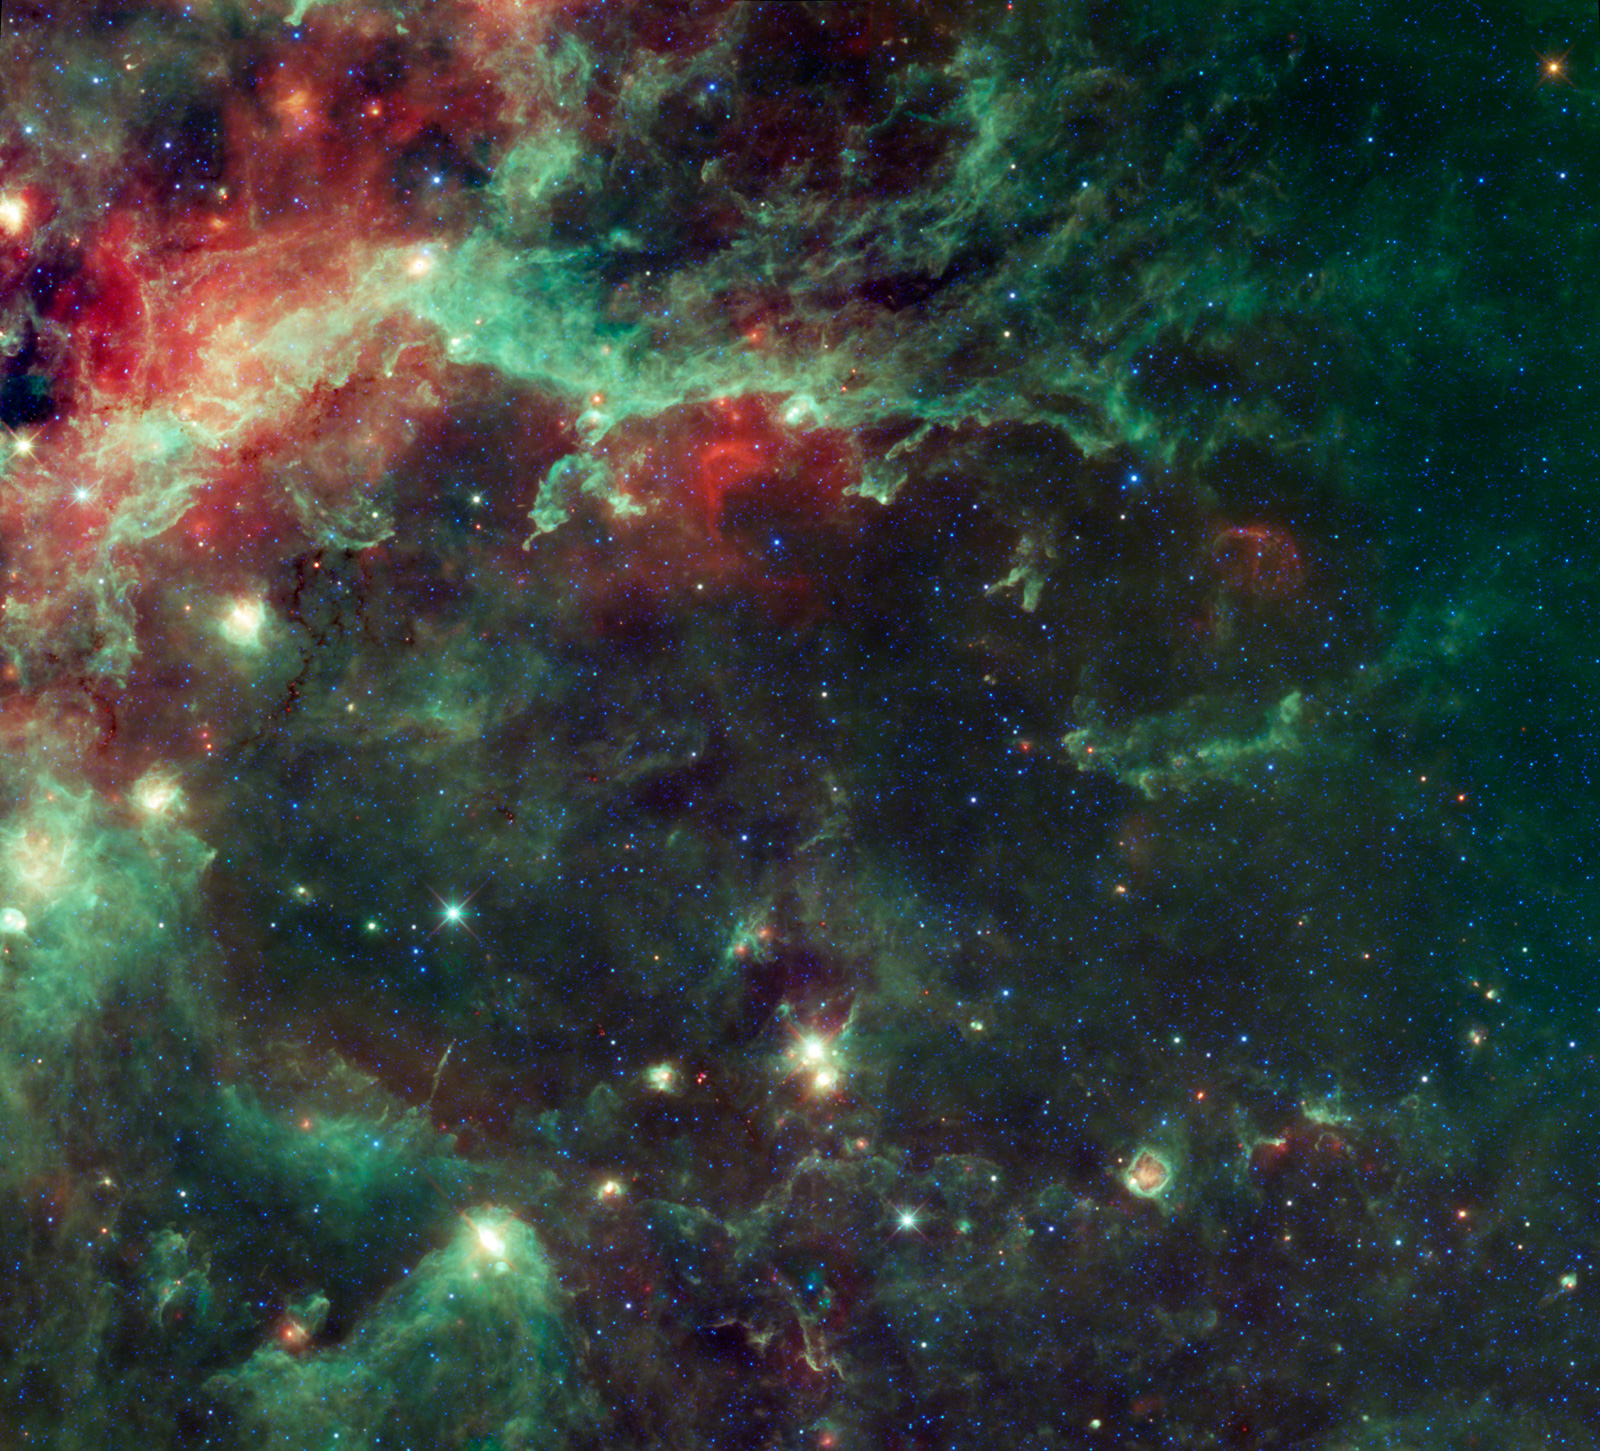 The multicolored clouds make up the large complex of star forming clouds and stellar clusters found in the constellation Cygnus.